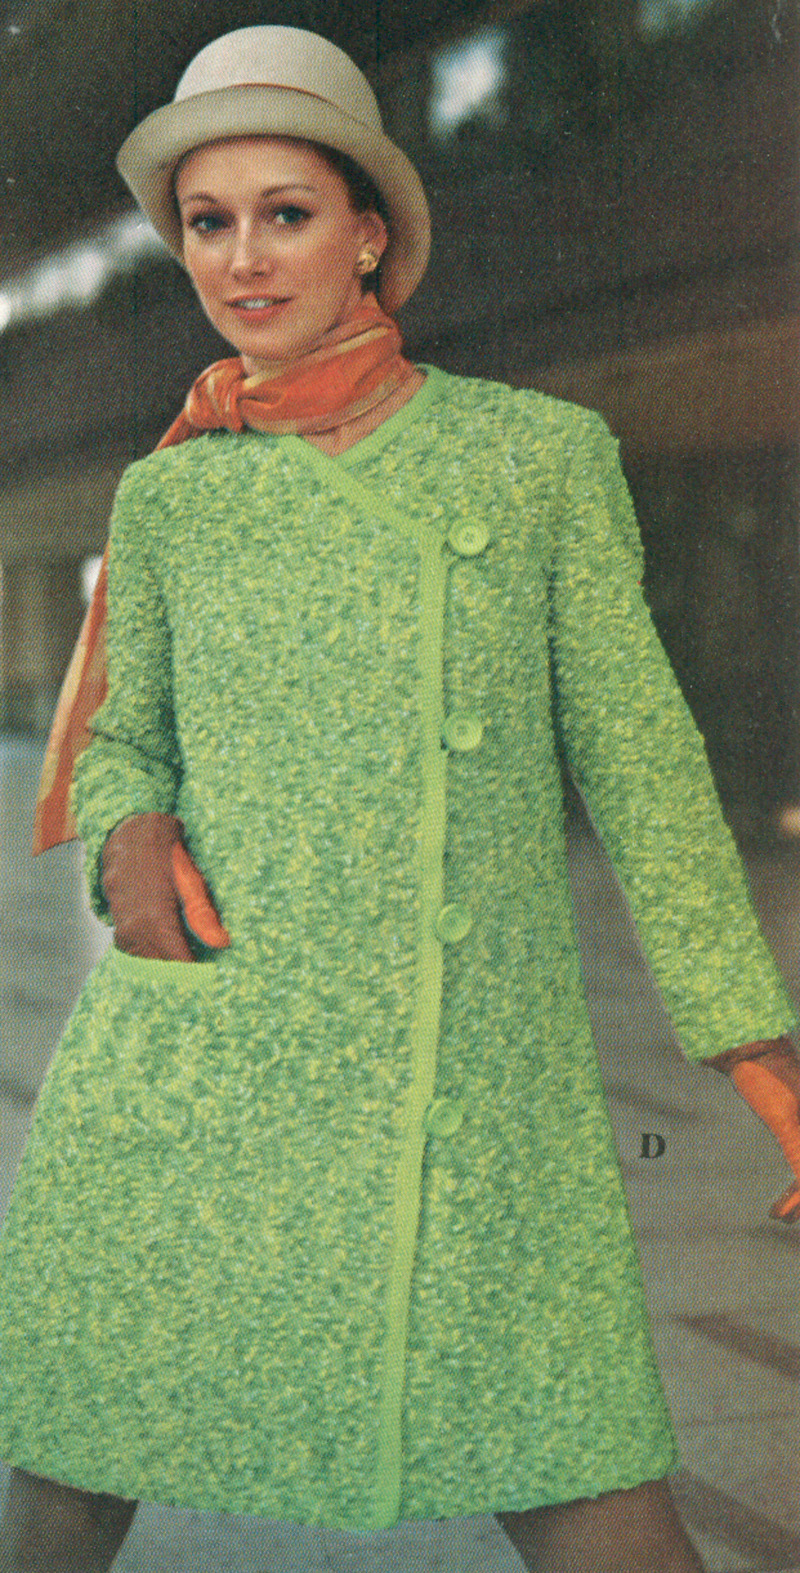 Vintage Bulletin, the Vintage Clothing blog: Spring has Sprung! Crochet or Kn...